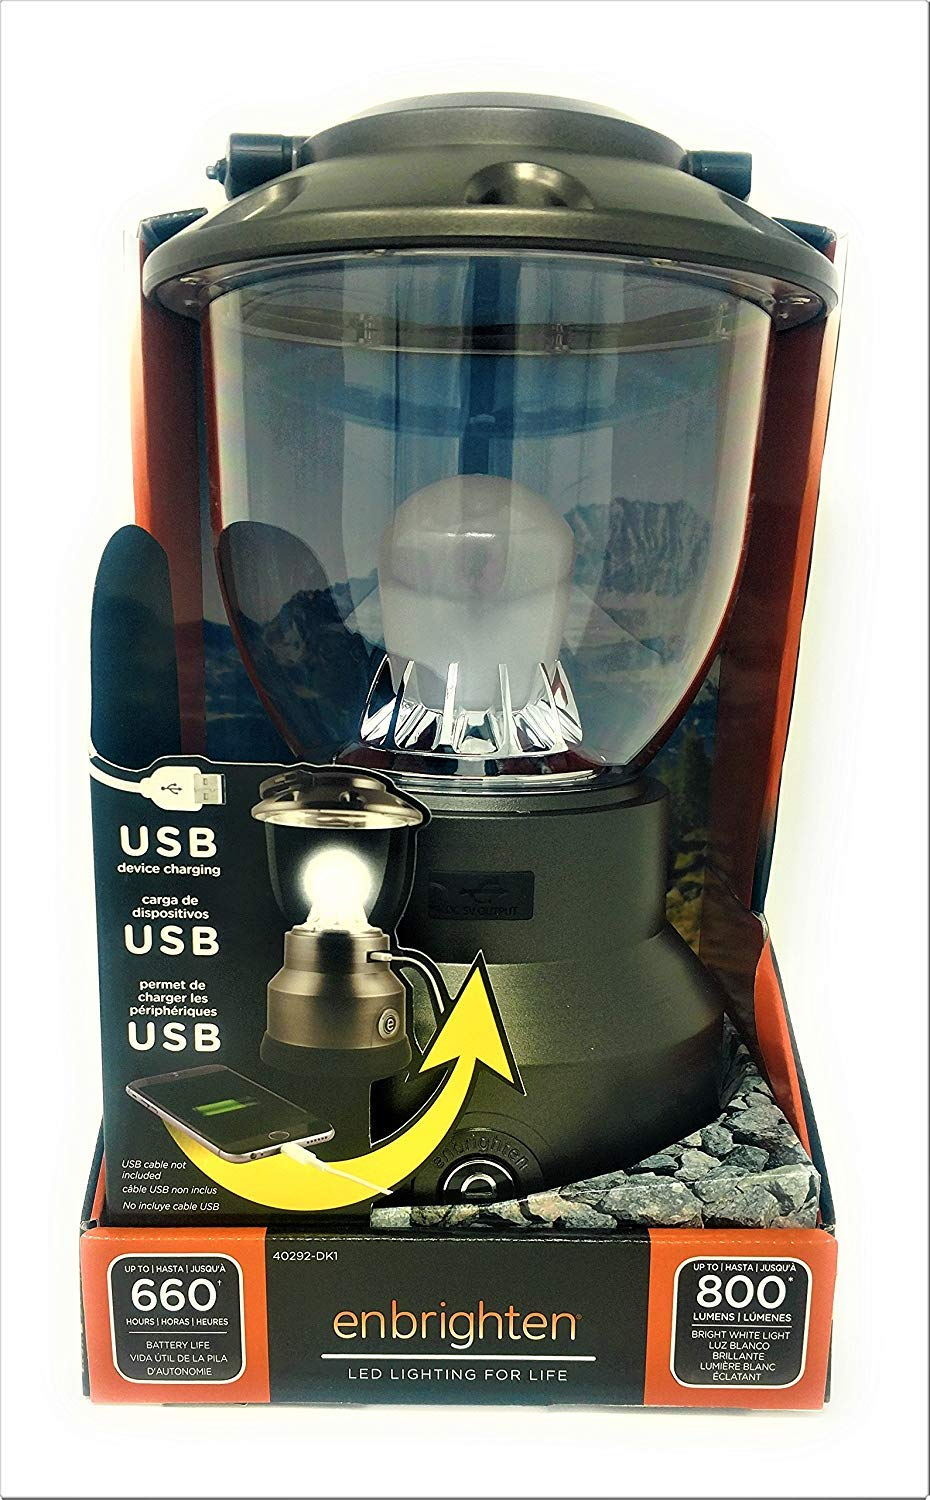 Enbrighten Lantern USB Charger 600 hrs Battery Life 800 Lumens Camping or Emergency Light